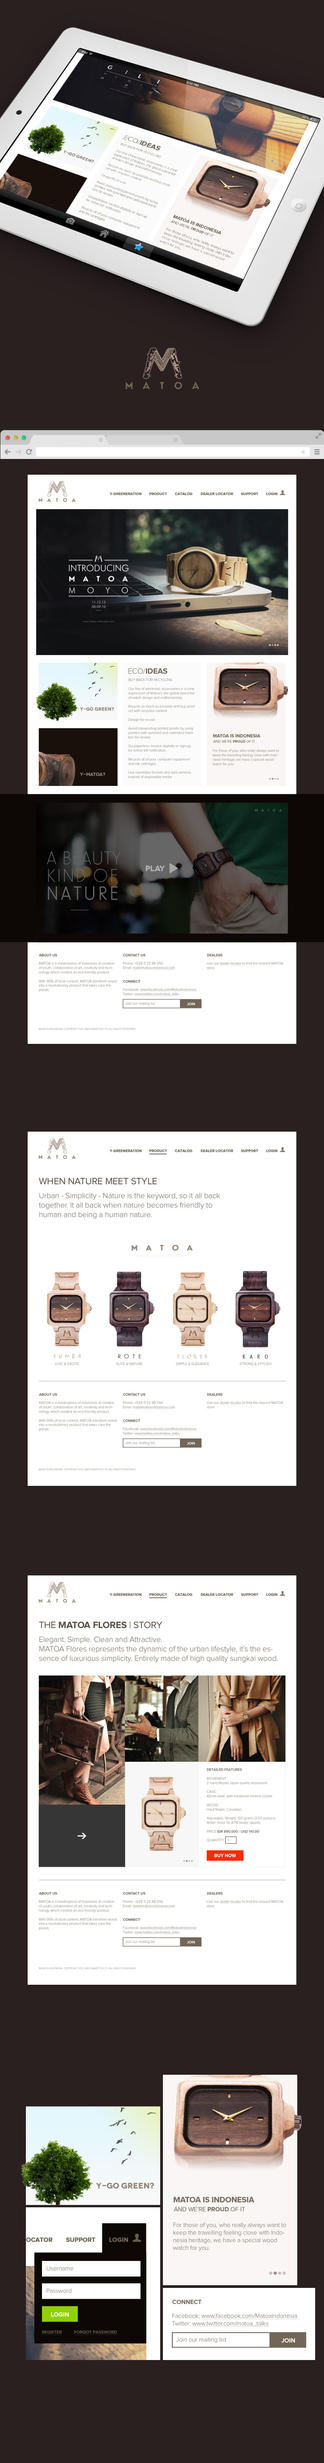 Matoa Redesign Concept by leoaw